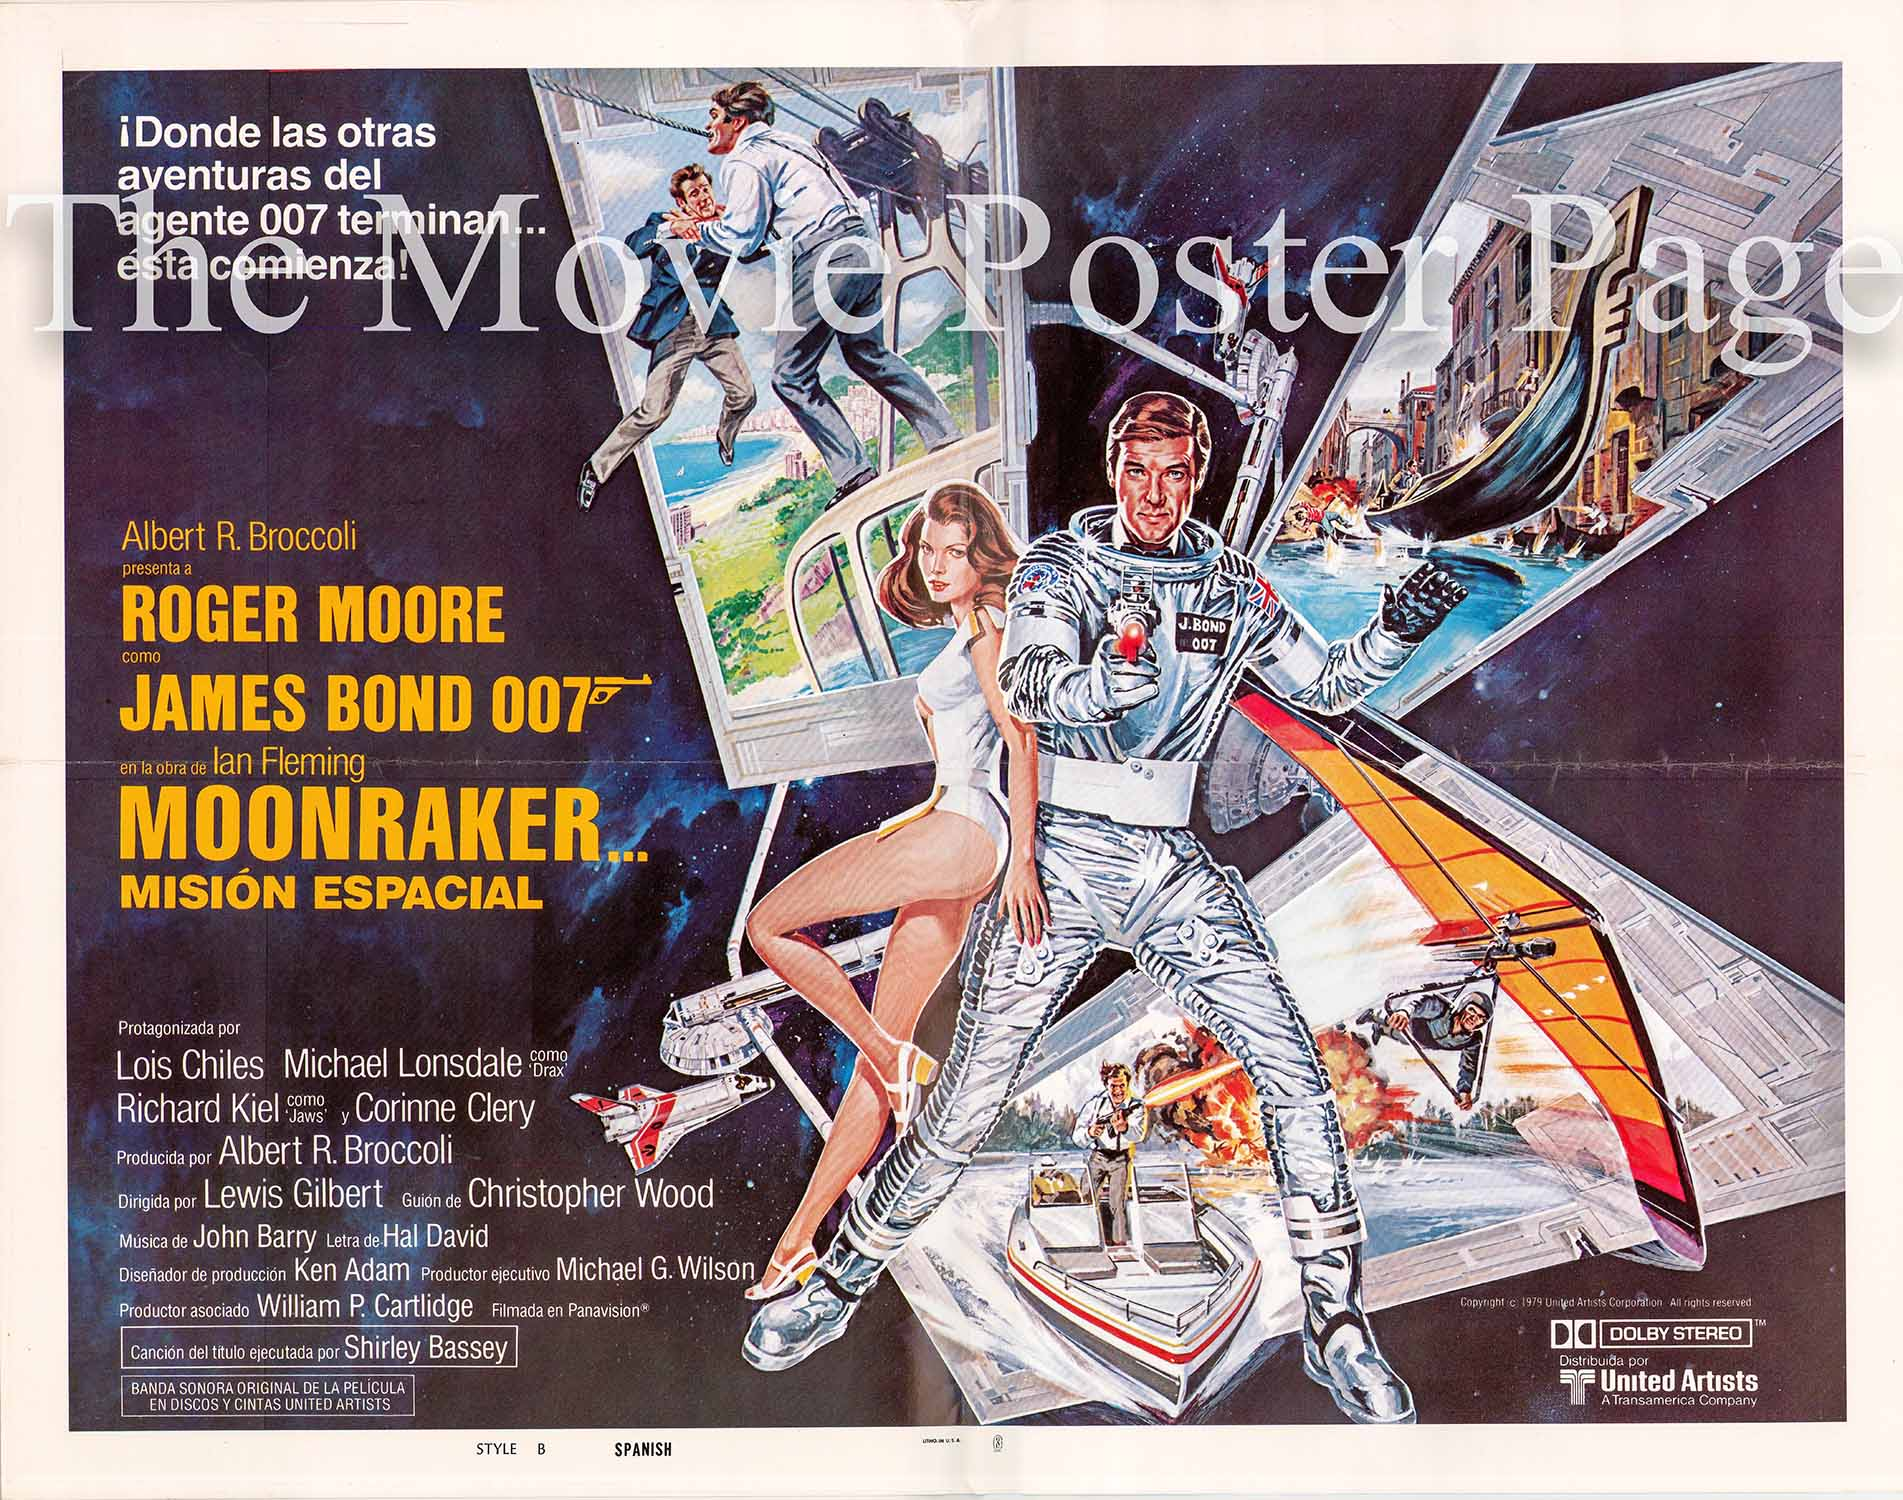 Pictured is a US half-sheet poster made to promote the 1979 Lewis Gilbert film Moonraker starring Roger Moore as James Bond.